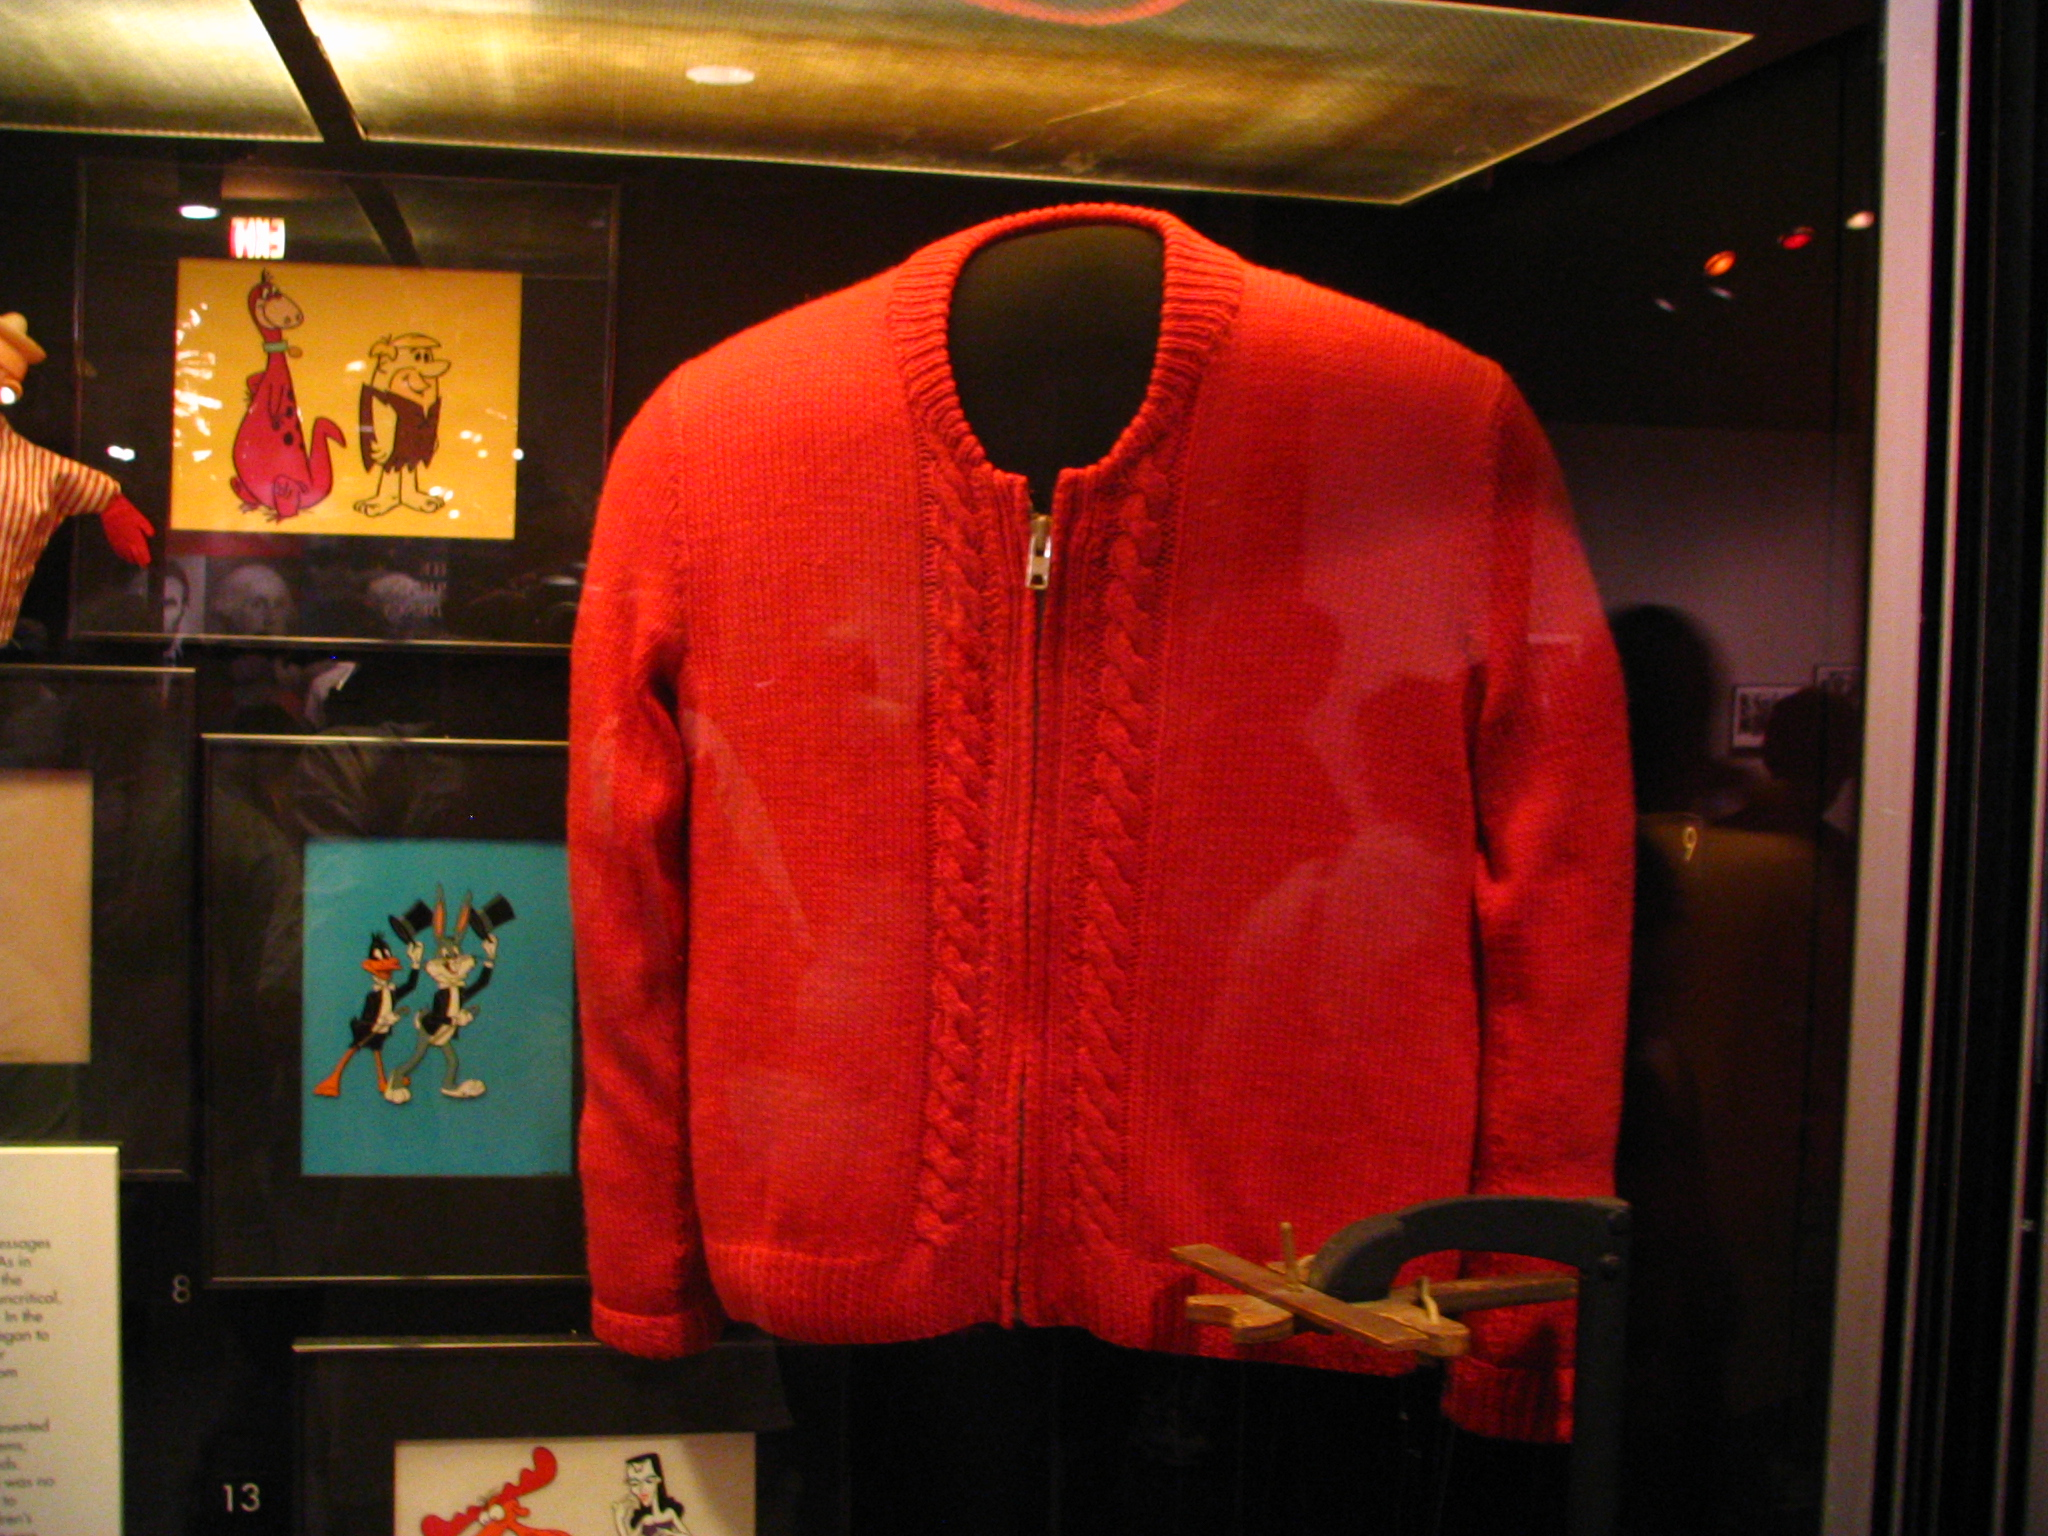 Cardigans And Kindness Fred Rogers Pasadena Public Library On The Shelf